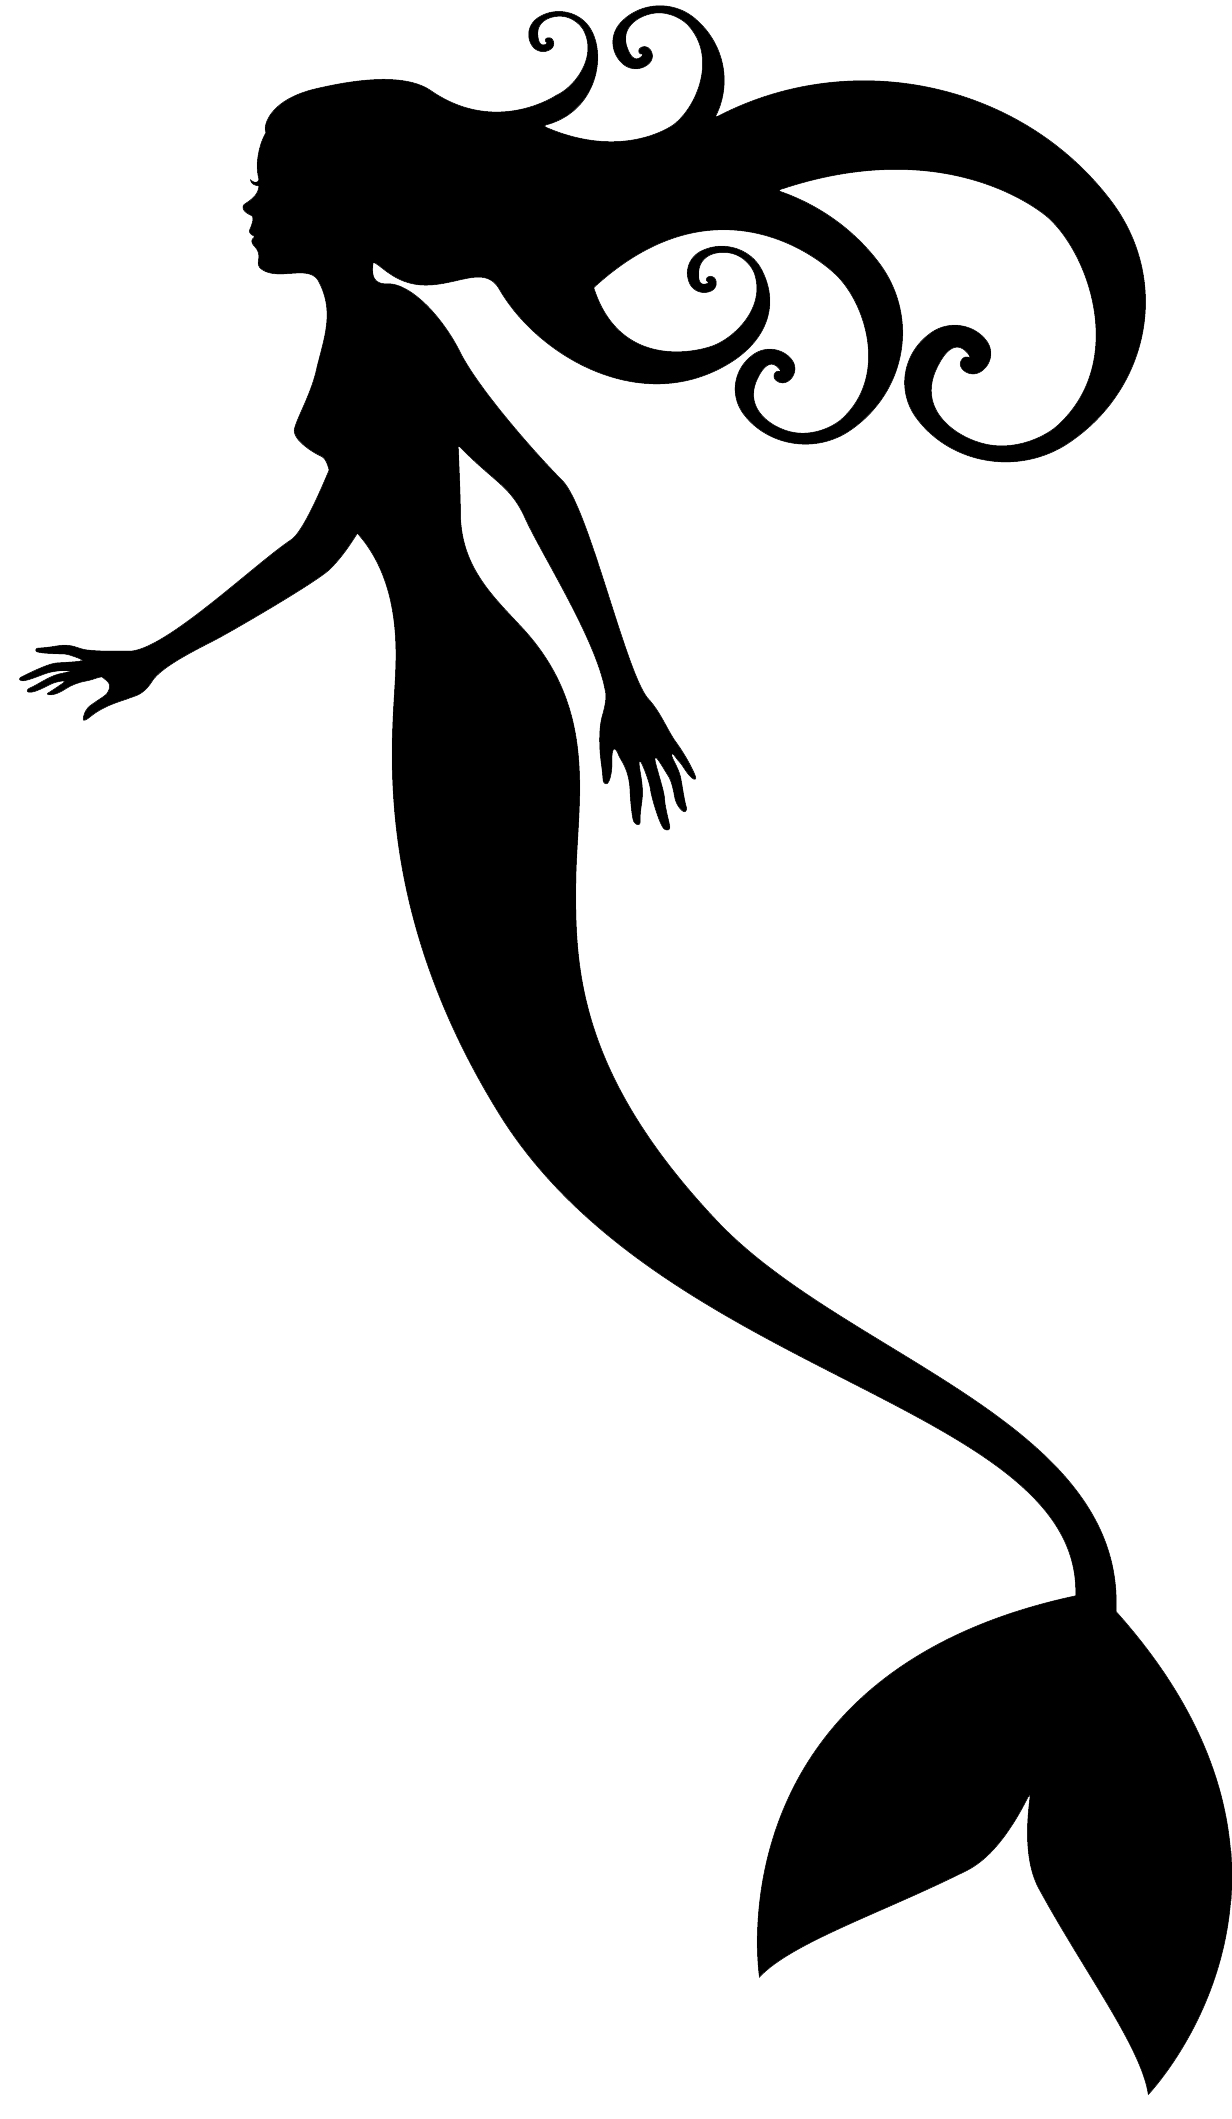 Ariel vector mermaid outline. Mermaids shadow puppet silhouette